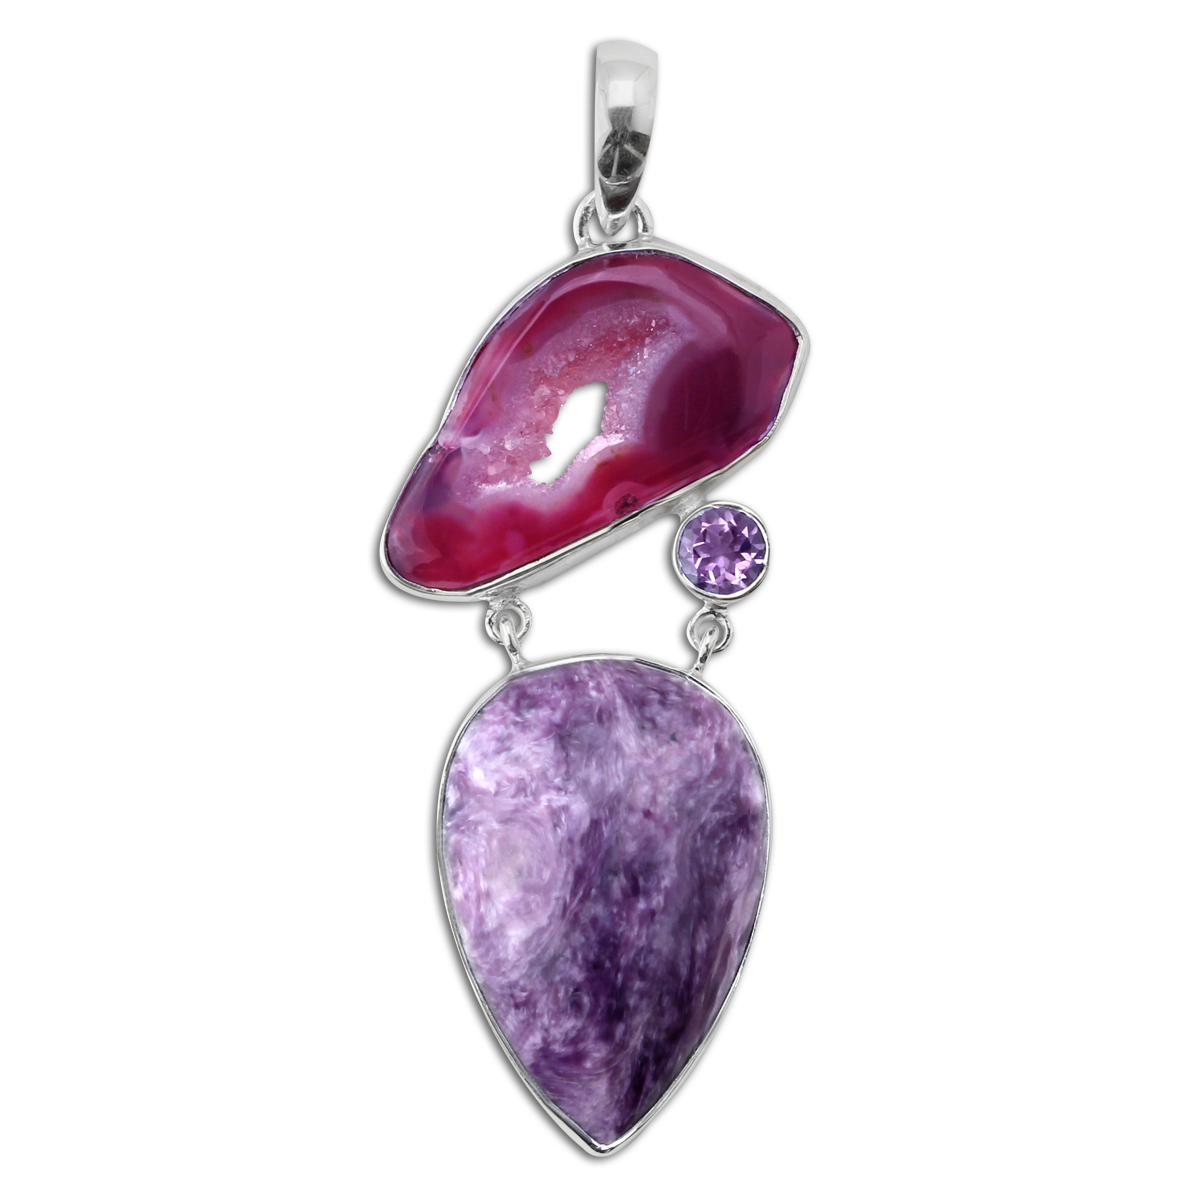 347459-Amethyst and Charoite Pendant